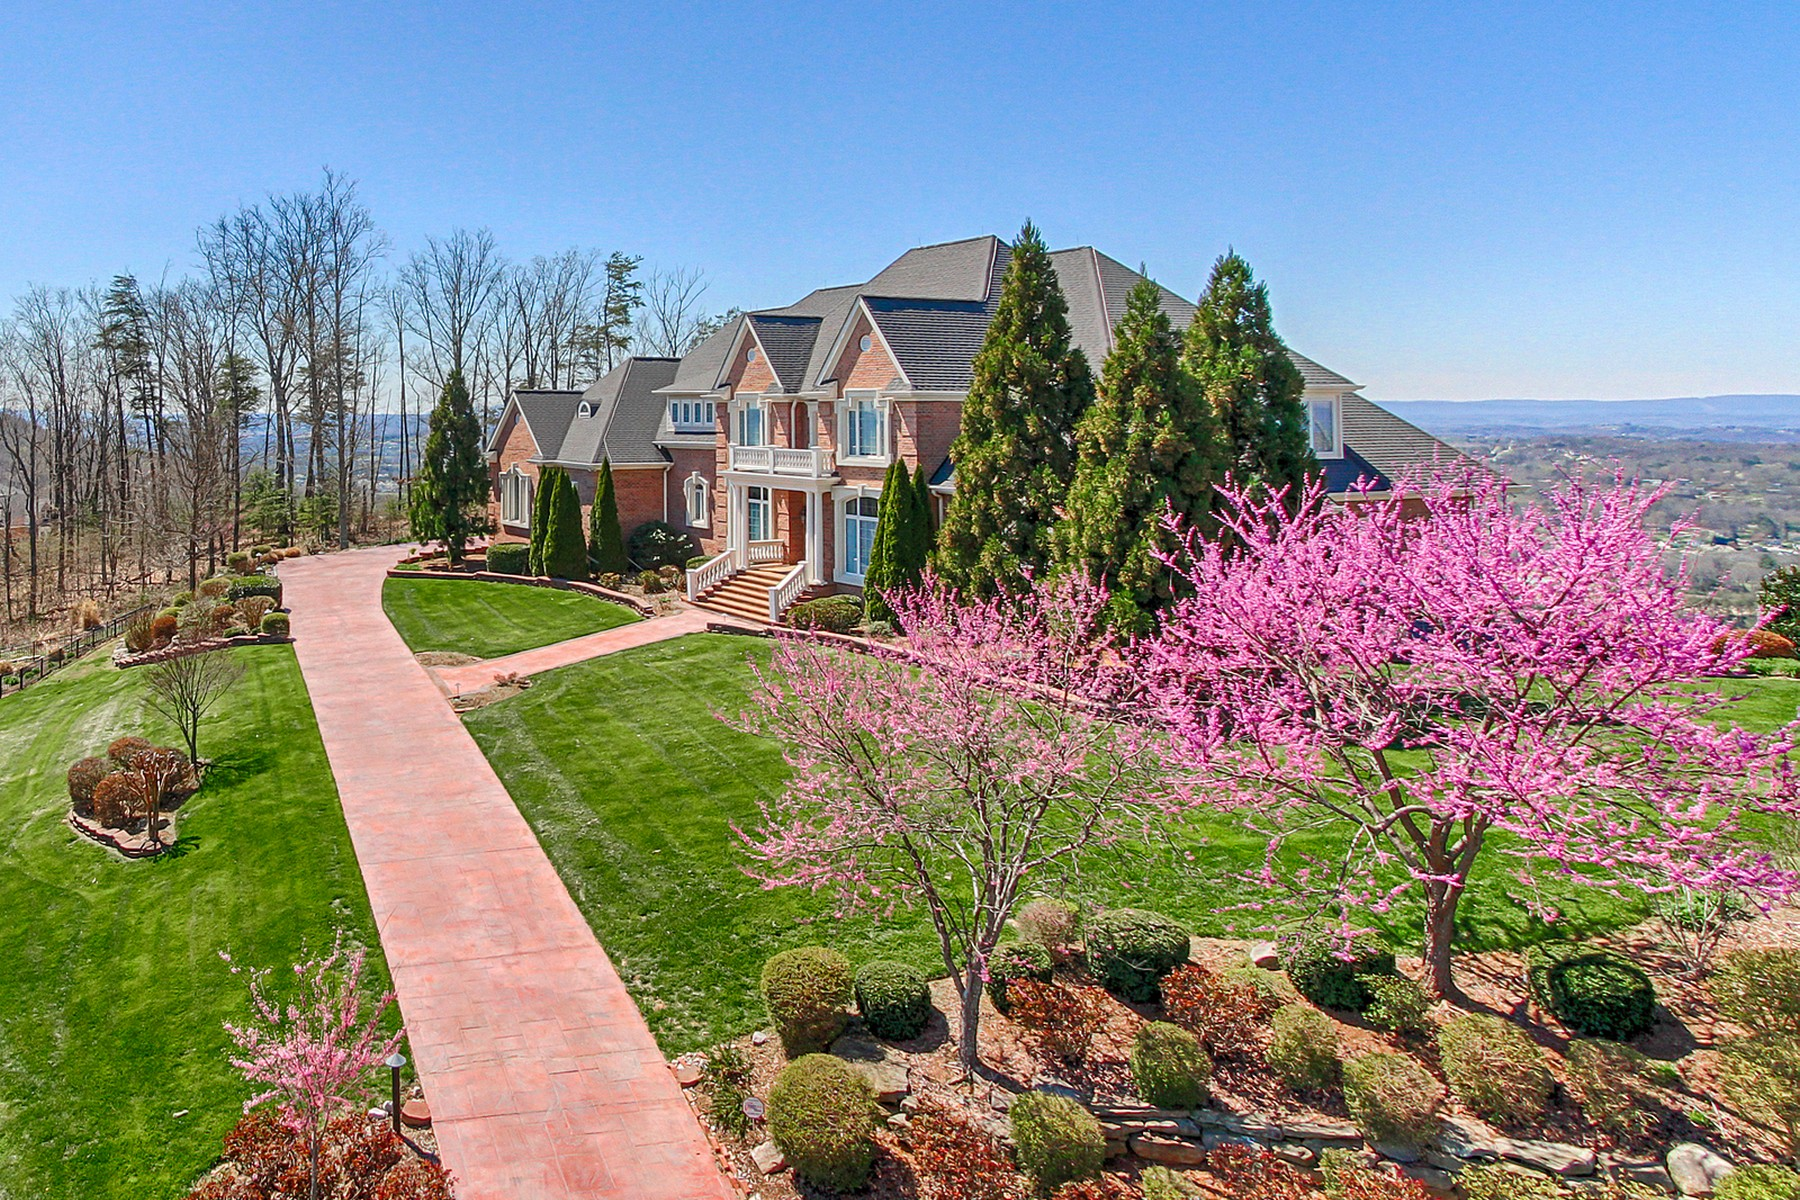 Moradia para Venda às Heavenly View 2179 Heavenly View Drive Ooltewah, Tennessee, 37363 Estados Unidos